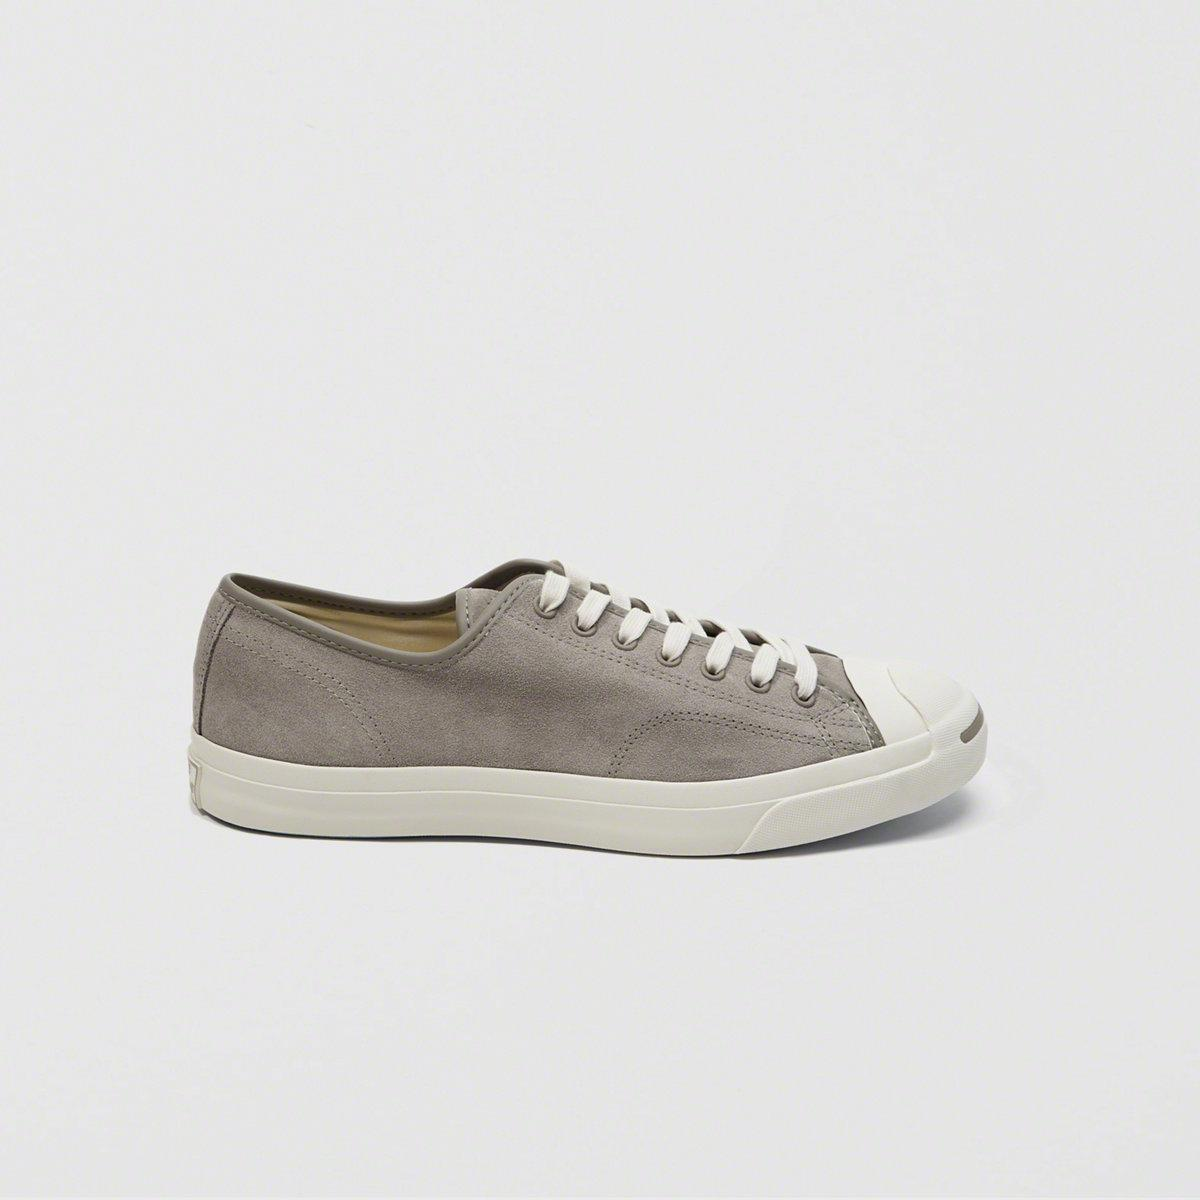 11a1018cd8e7 Lyst - Abercrombie   Fitch Converse Jack Purcell Classic Low-top Sneaker